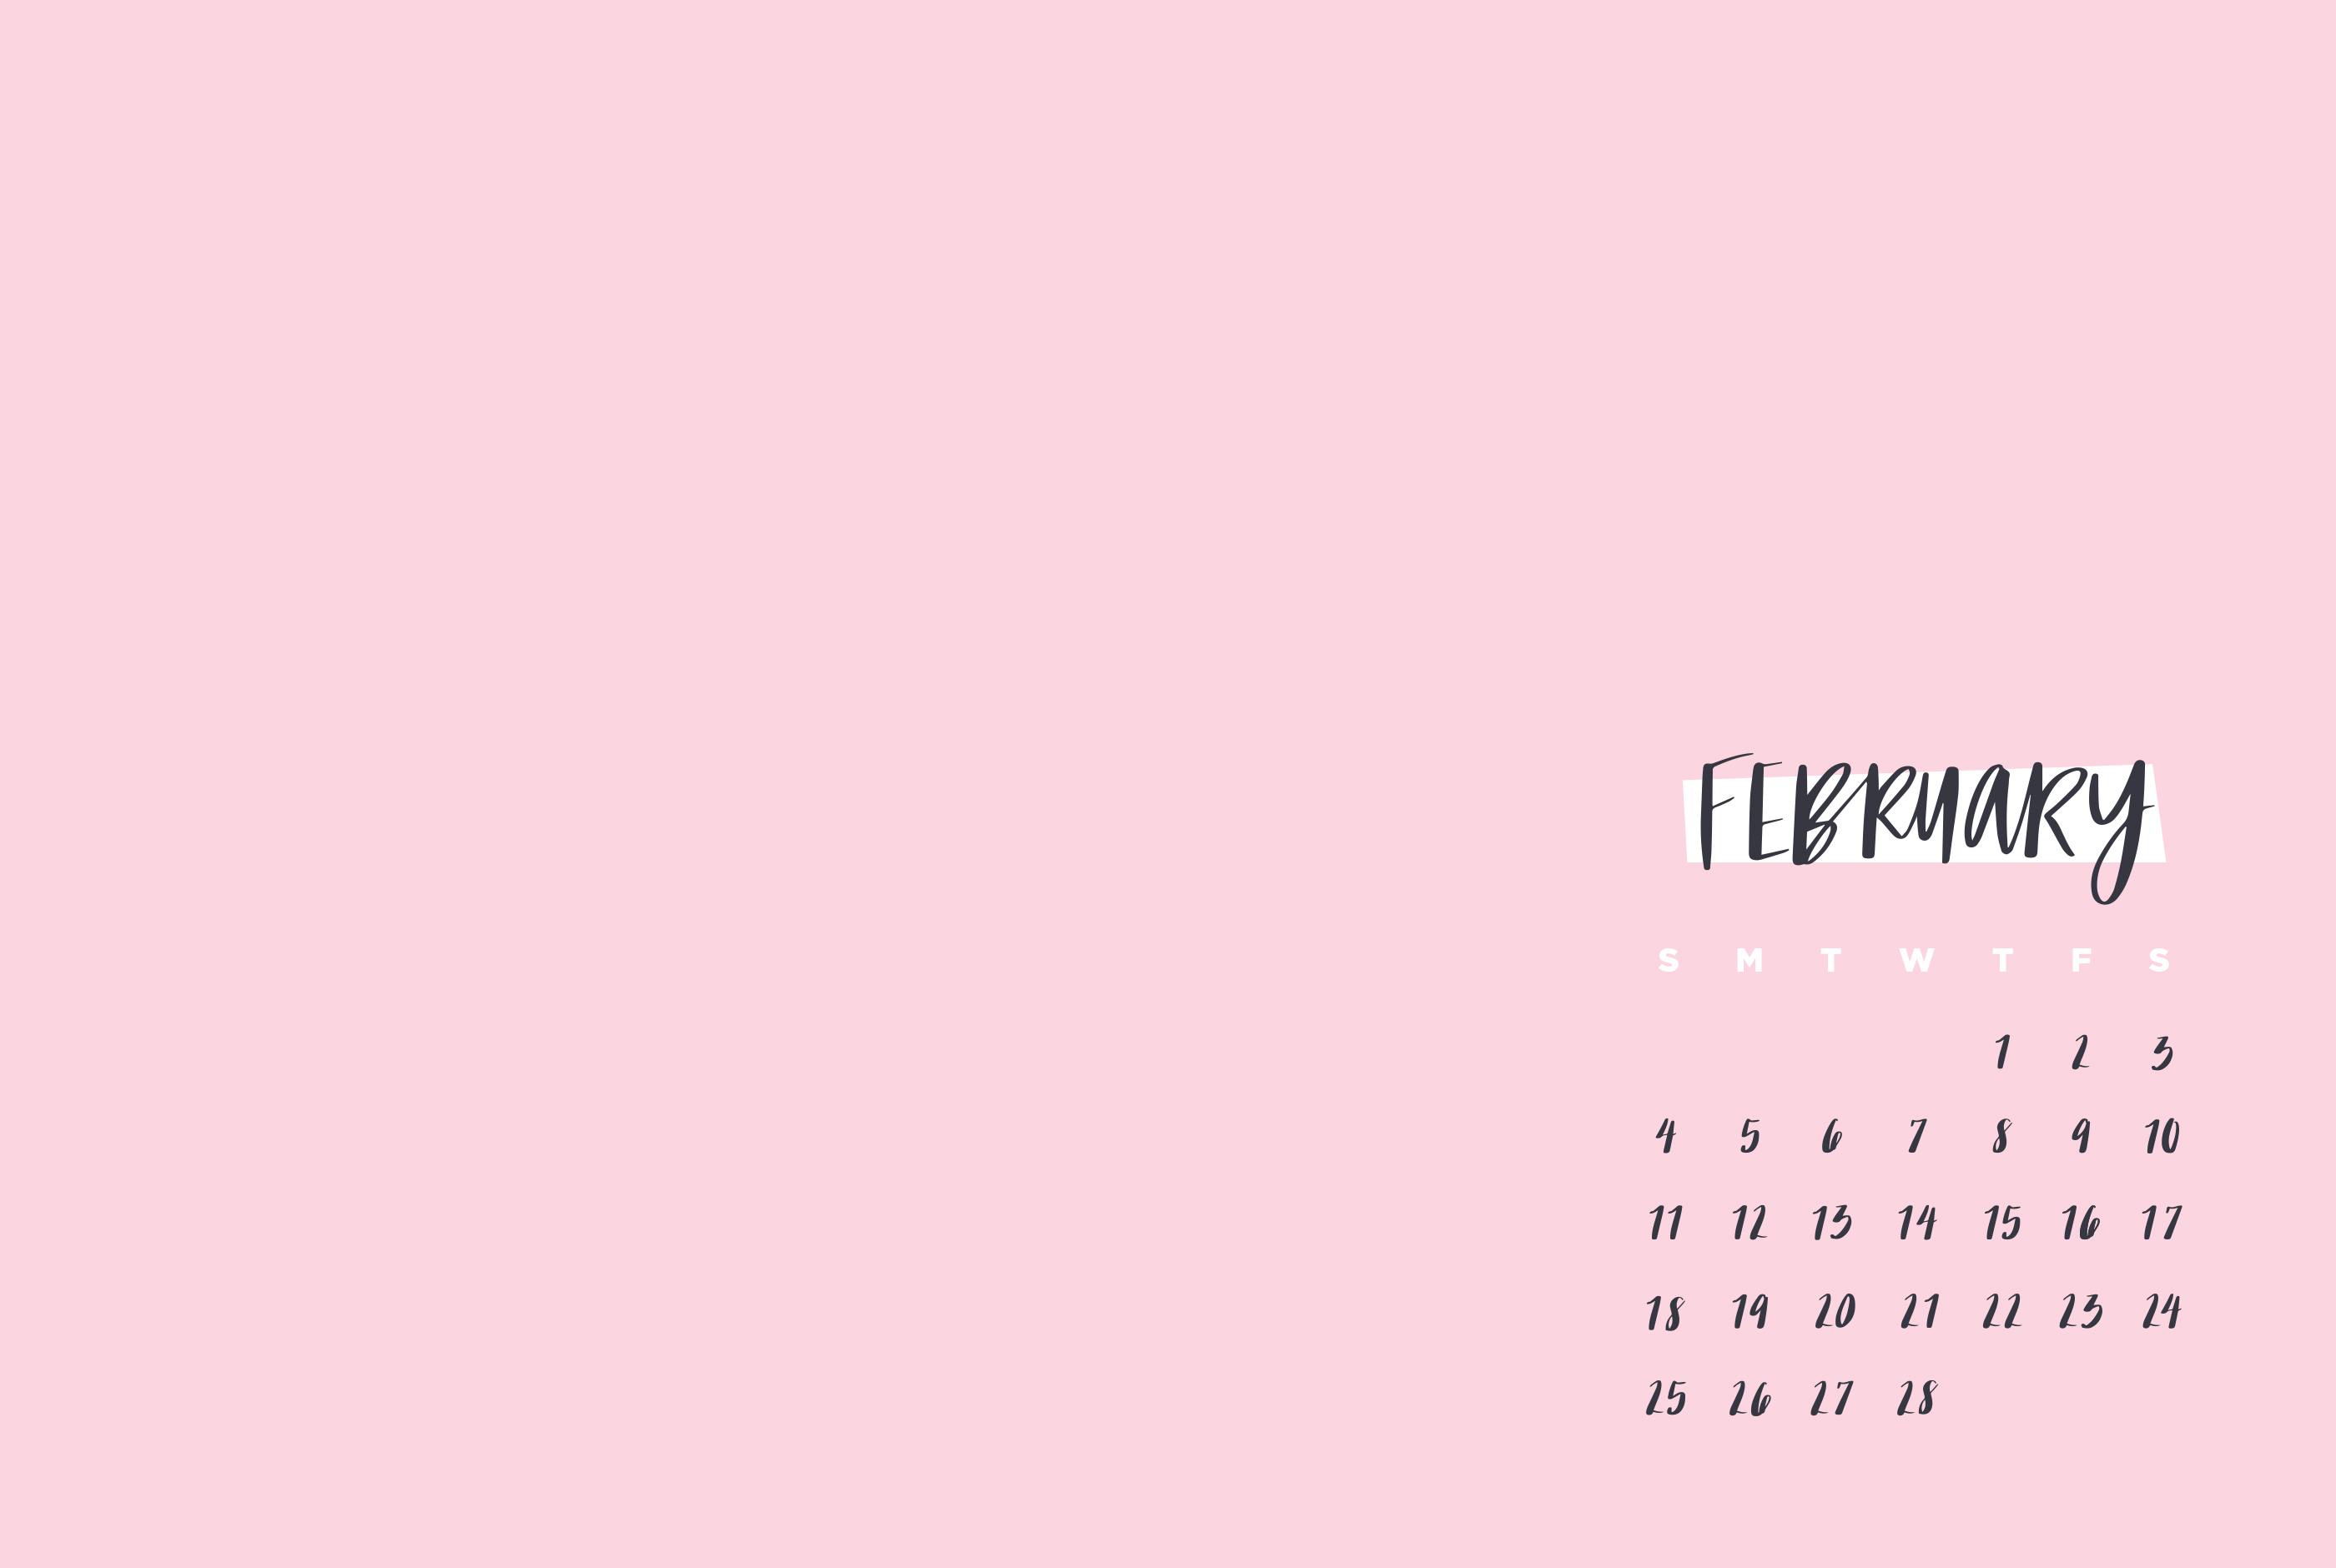 Wallpaper For February Posted By Ryan Tremblay